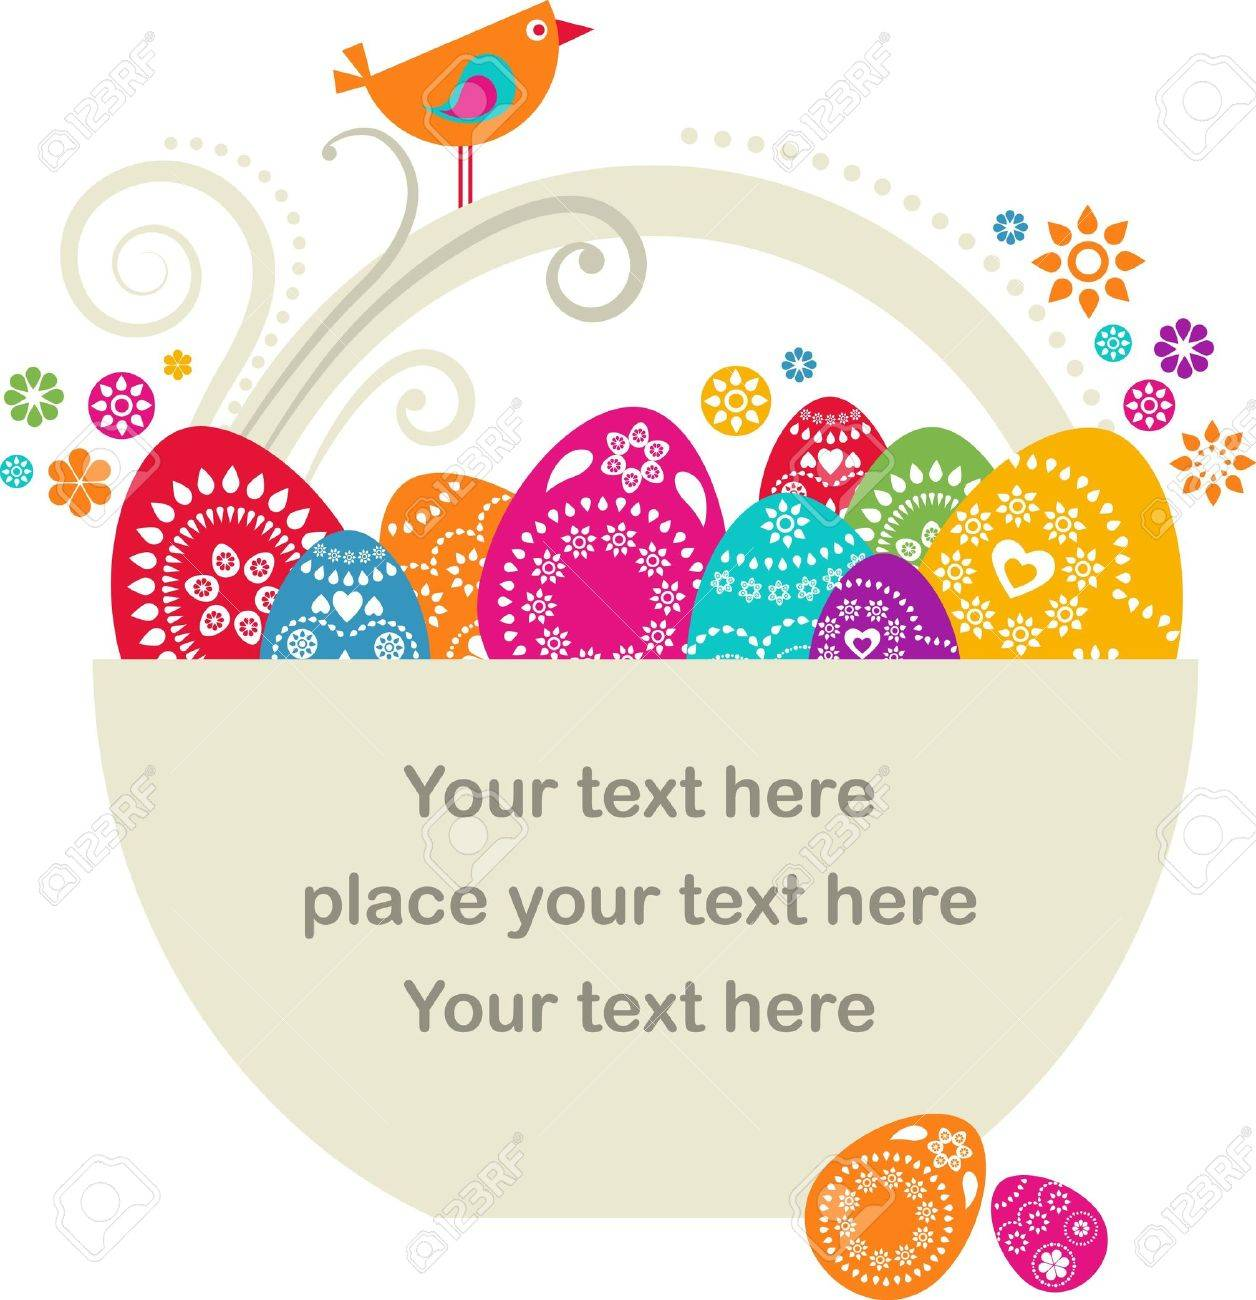 Easter card template -  basket with colored eggs and flowers Stock Photo - 6481656